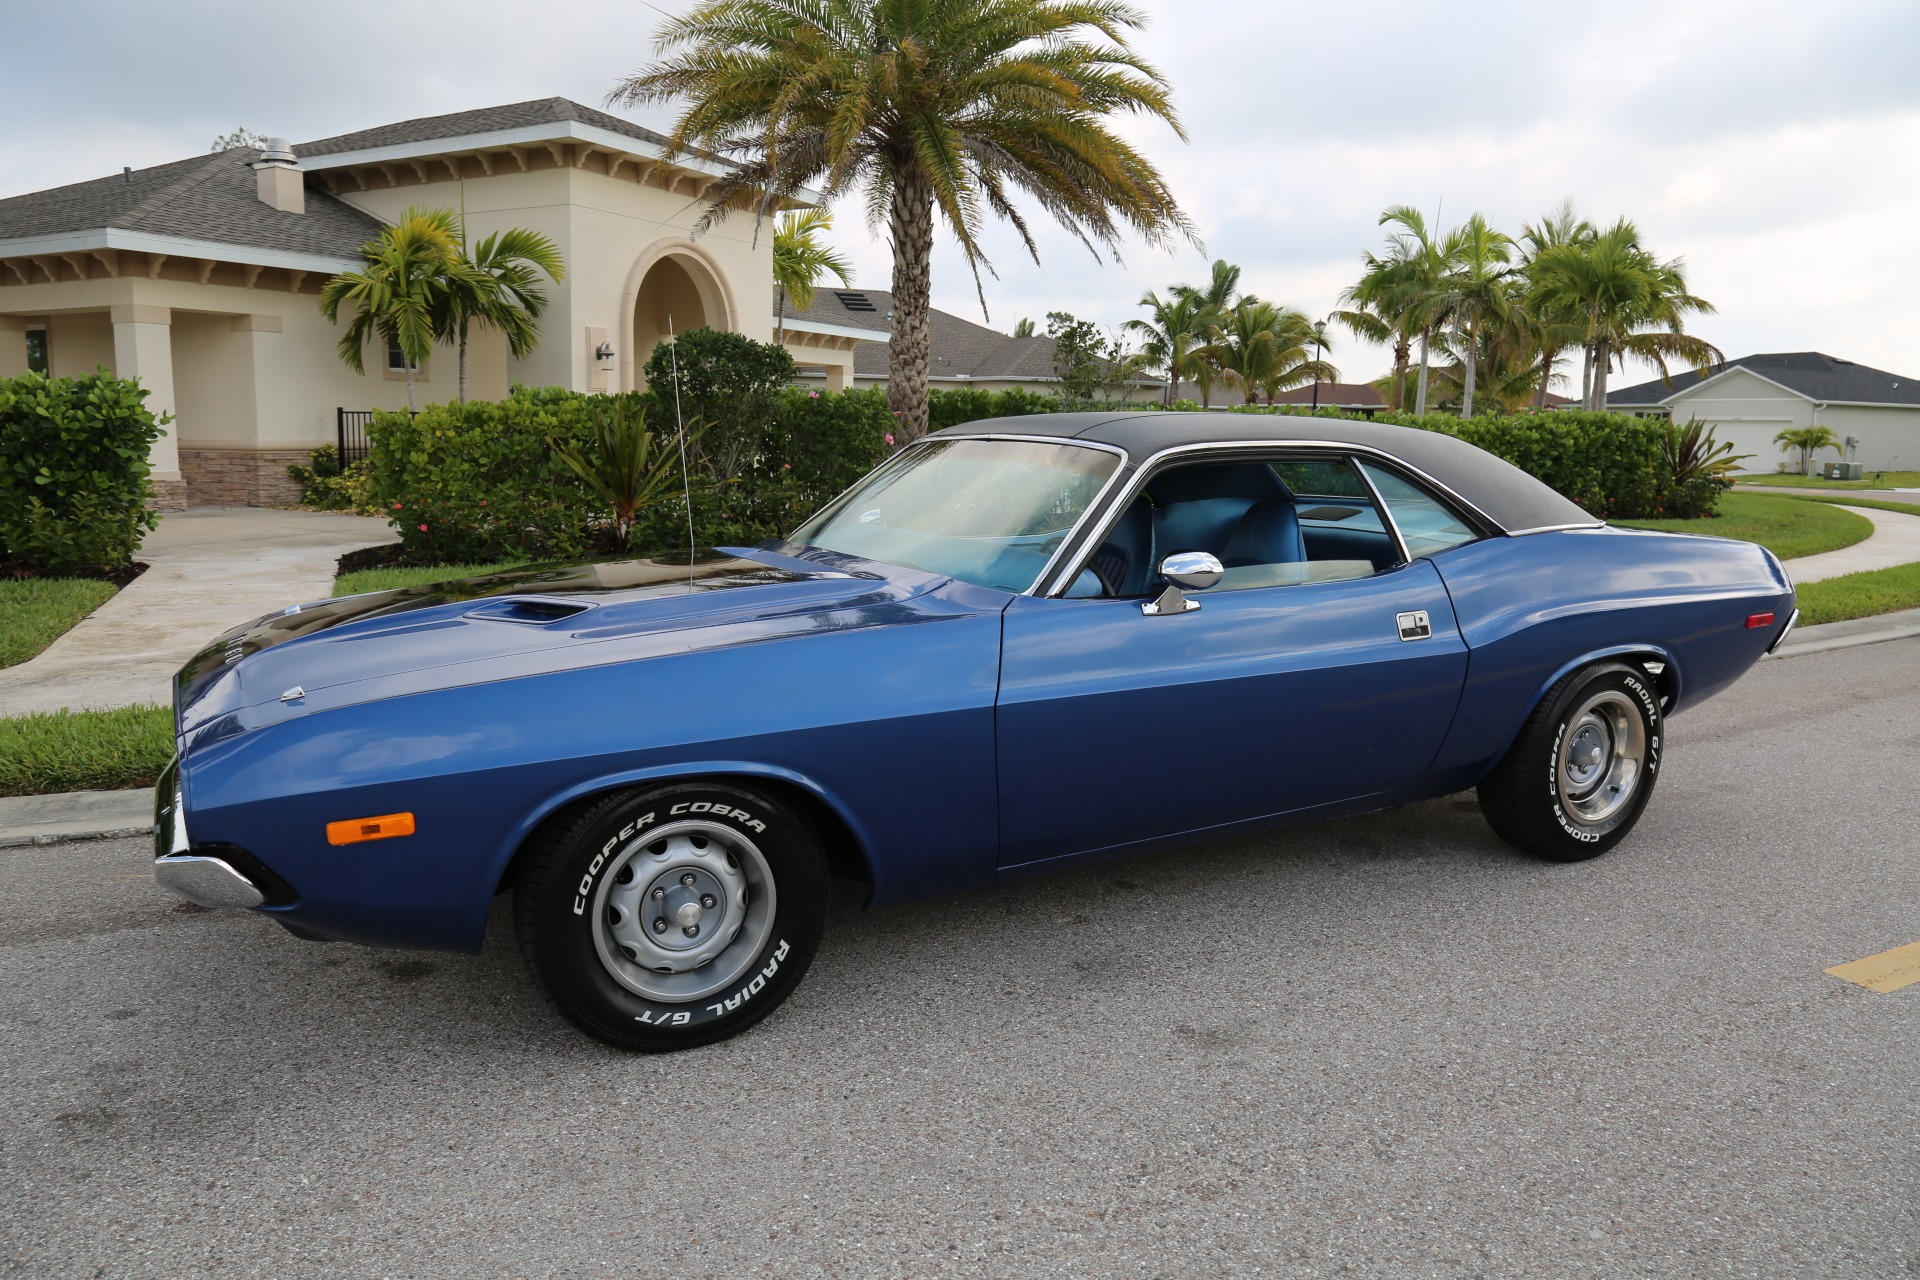 Used 1973 Dodge Challenger 360 V8 Automatic for sale Sold at Muscle Cars for Sale Inc. in Fort Myers FL 33912 8